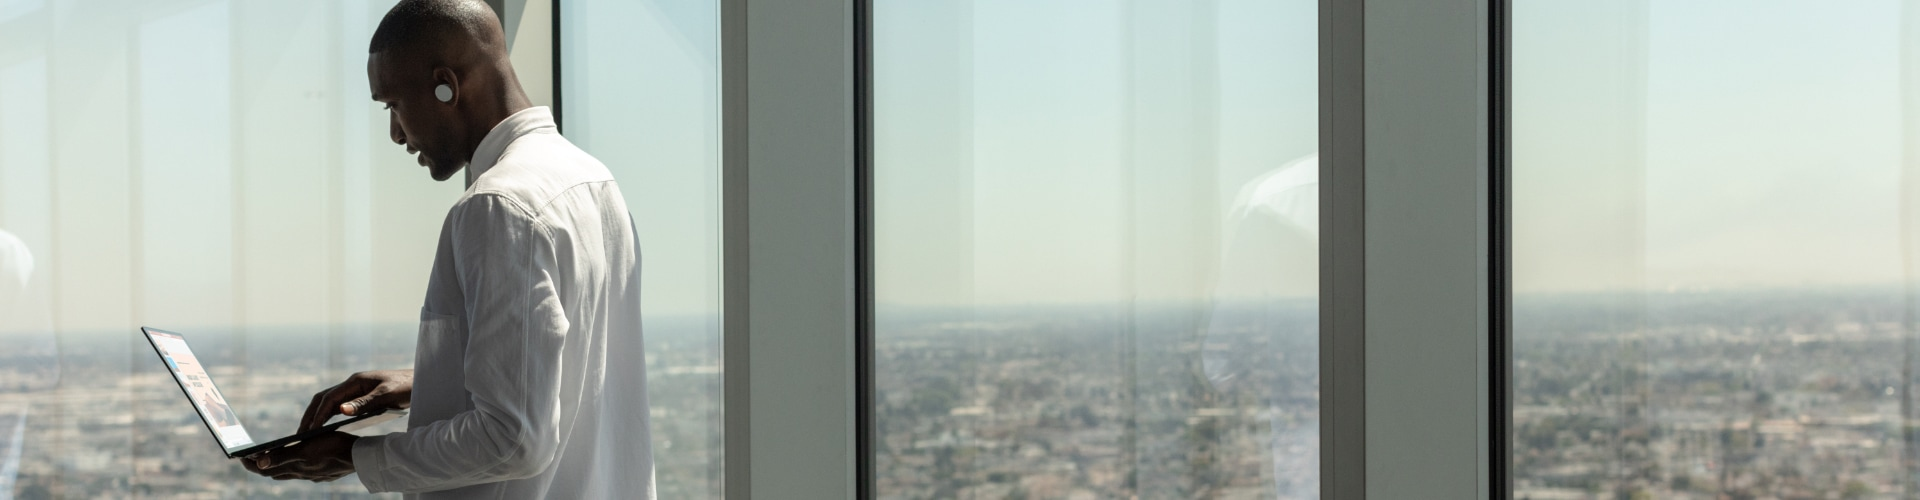 A person working on a laptop while standing by large windows with a view of the city below.